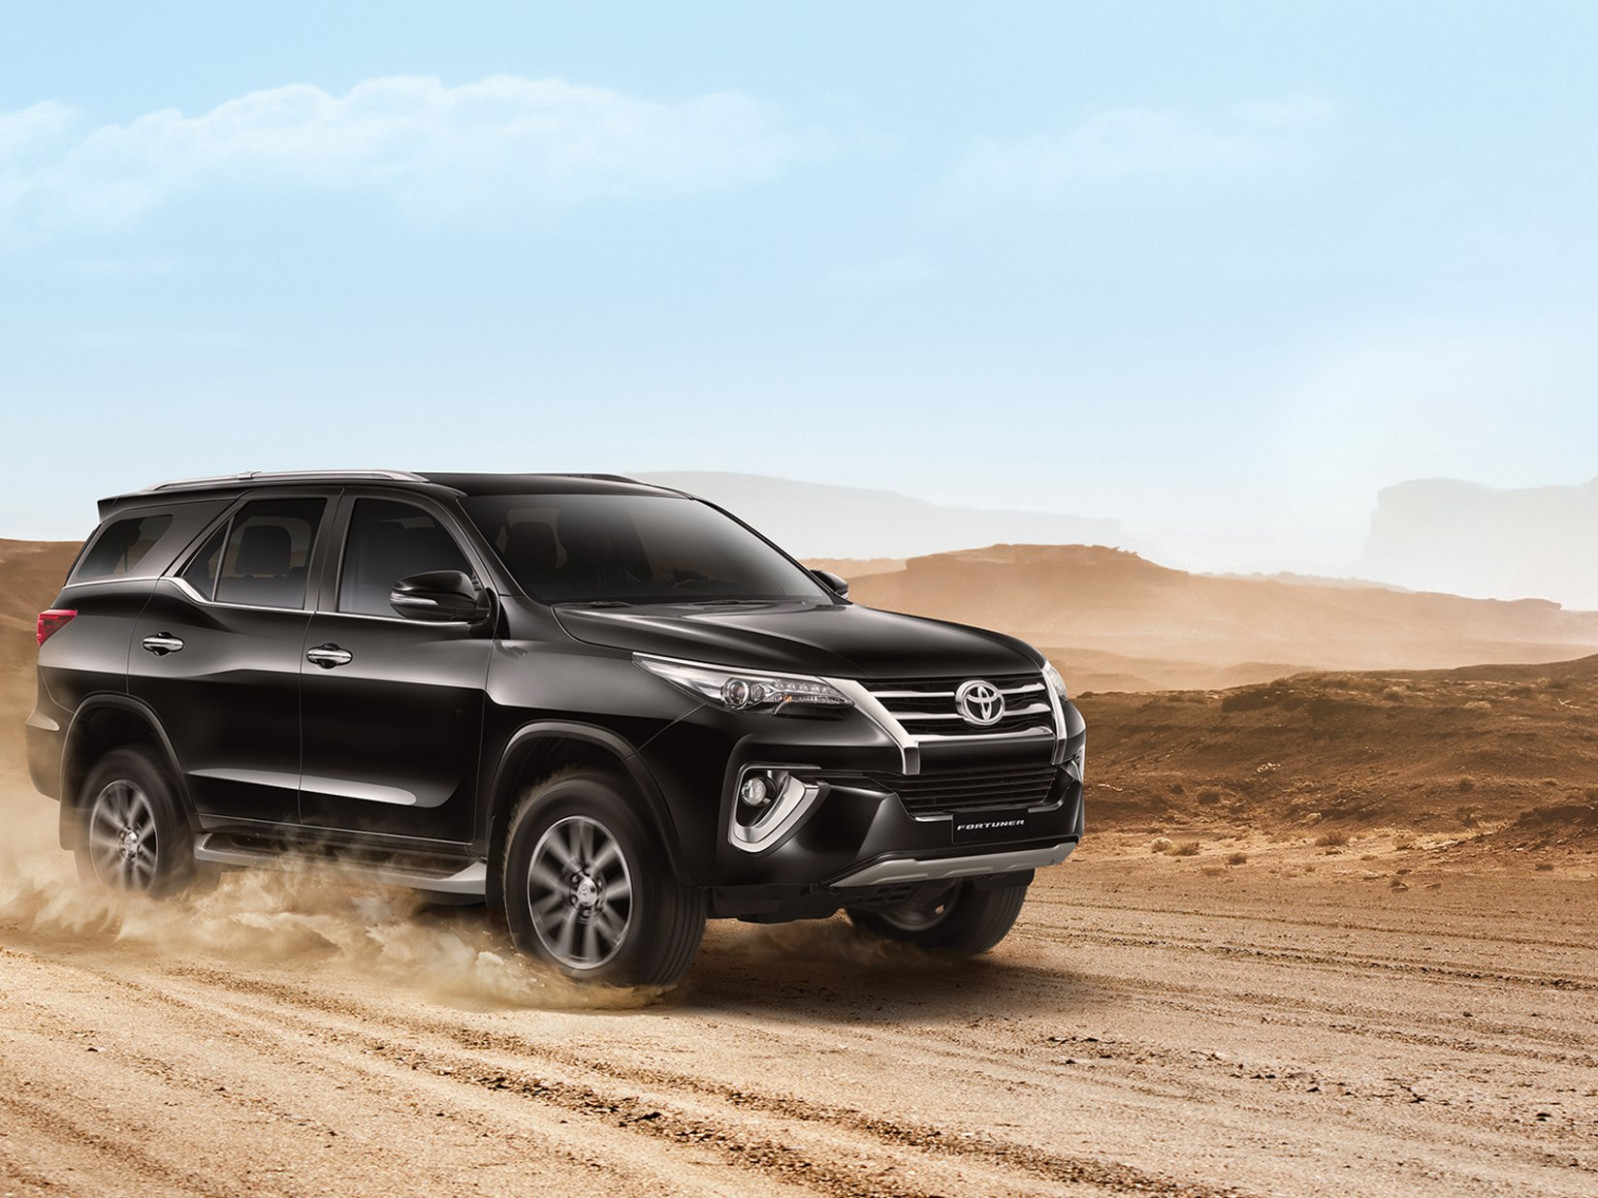 New Toyota Fortuner 11 Cars for Sale in the UAE | Toyota